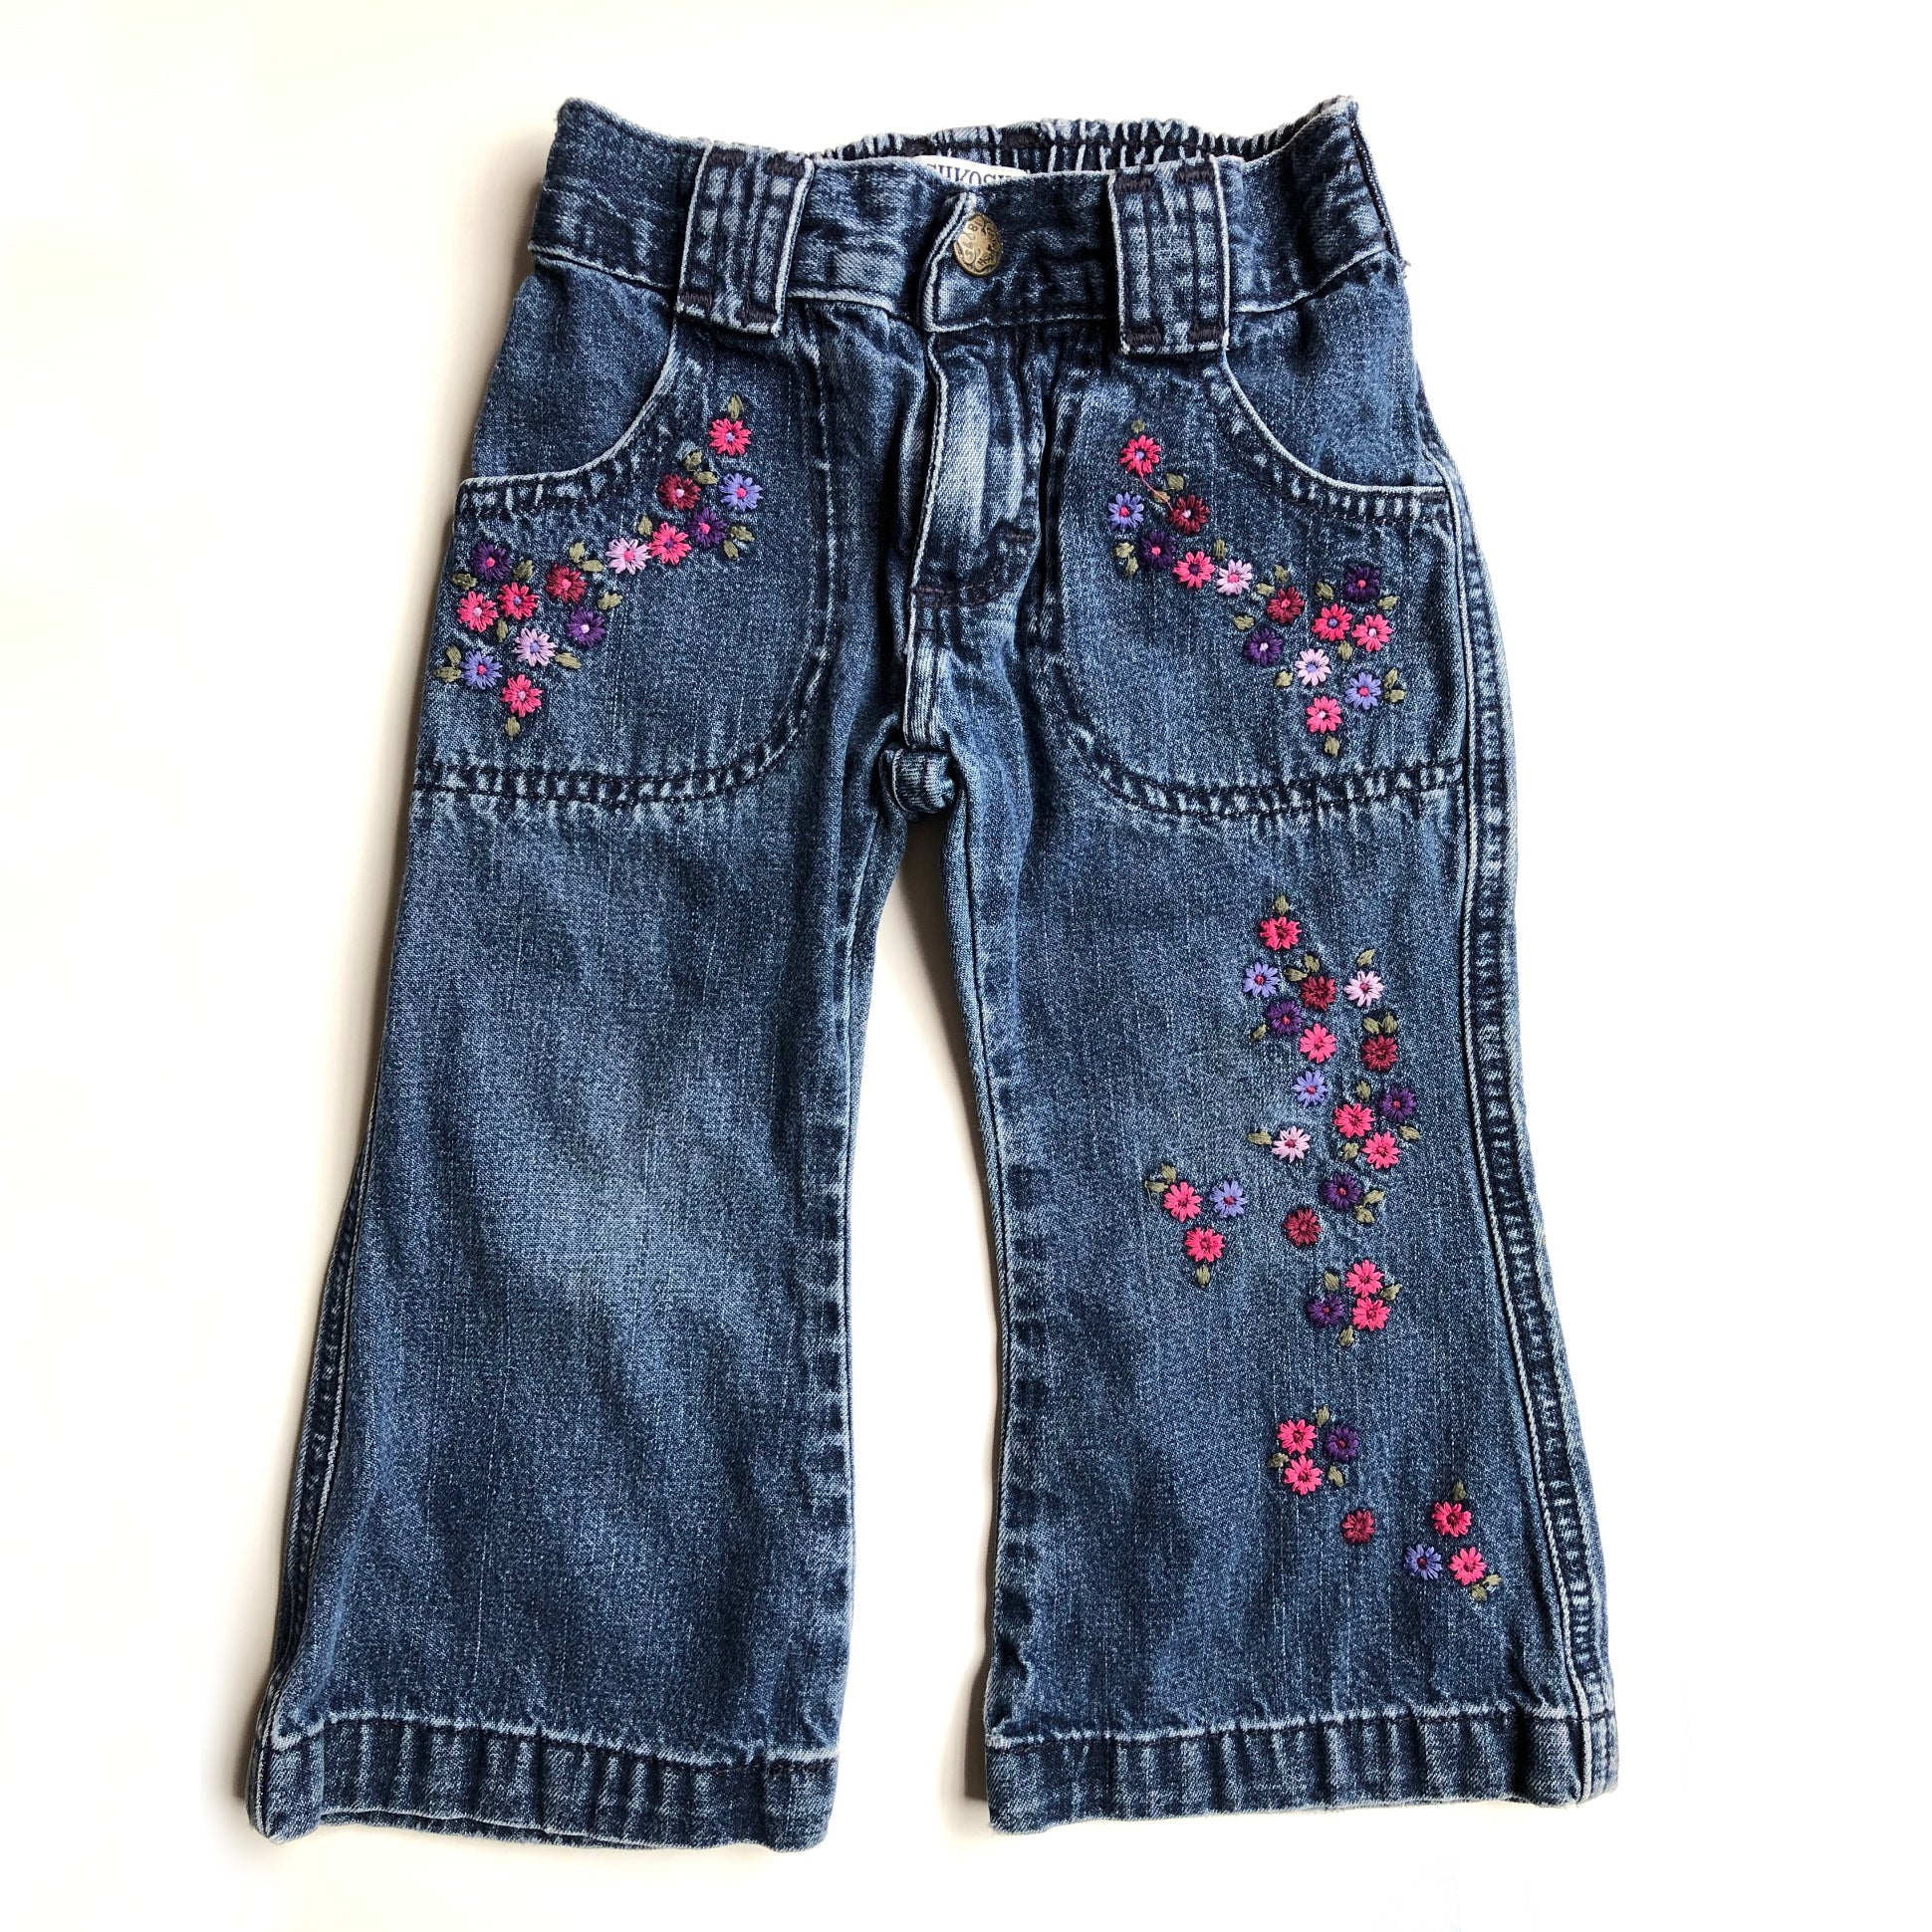 Vintage Oshkosh embroidered jeans size 12-18 months